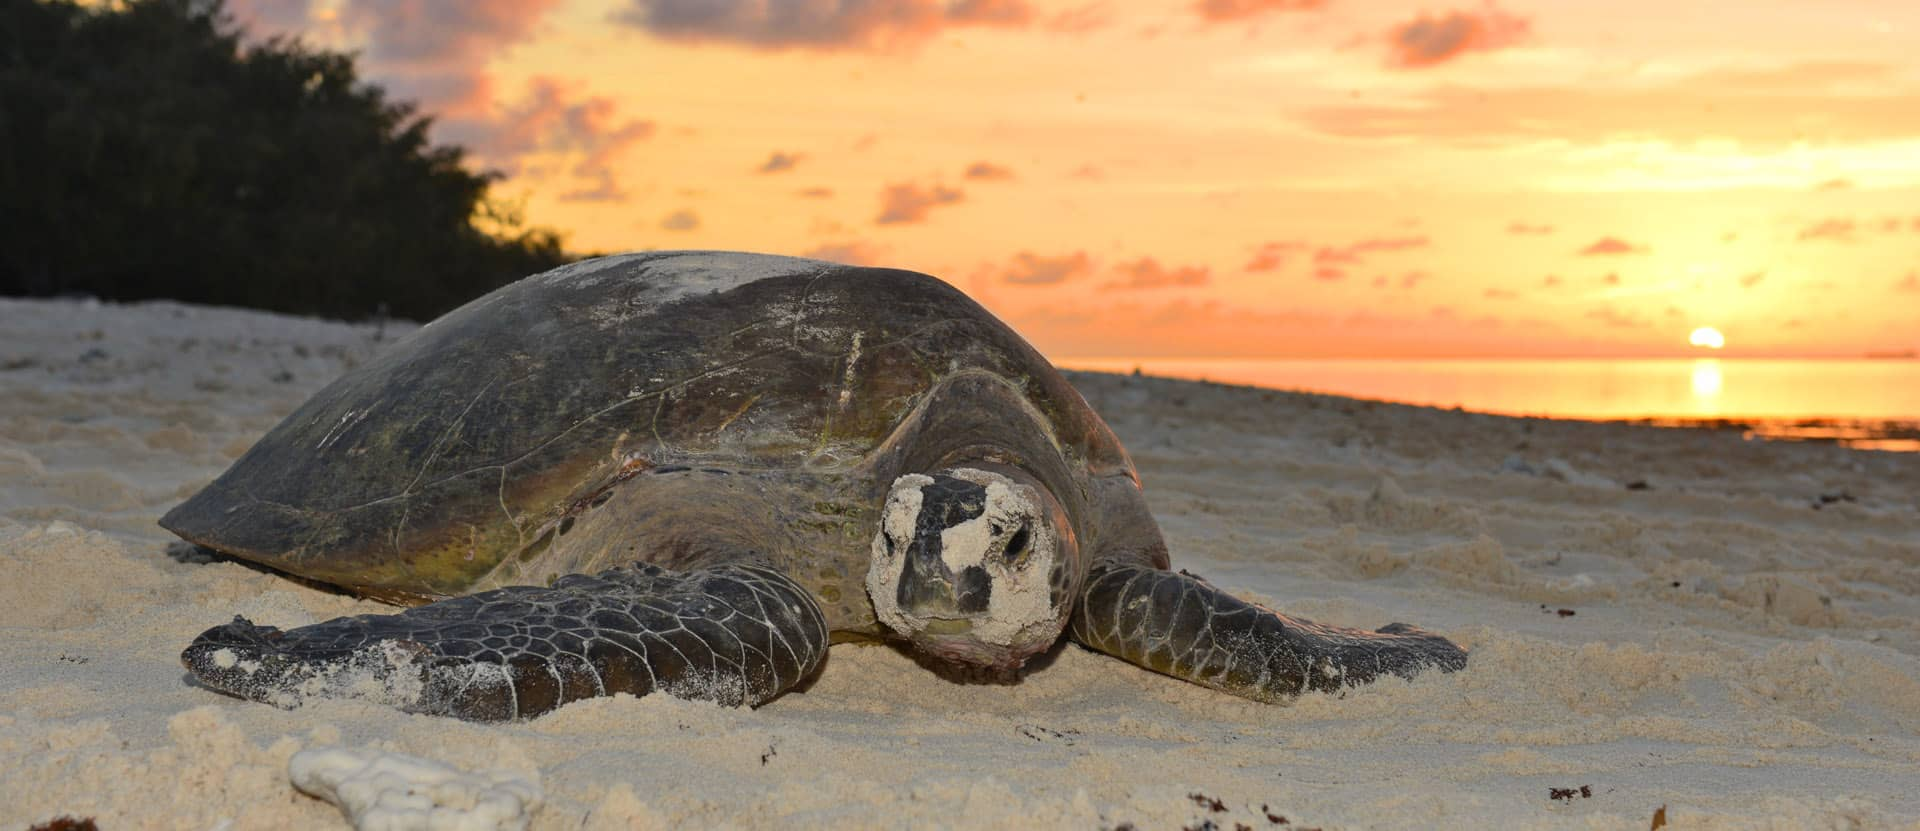 Lady Musgrave Island - Camping, Turtles, Seabirds and Snorkeling